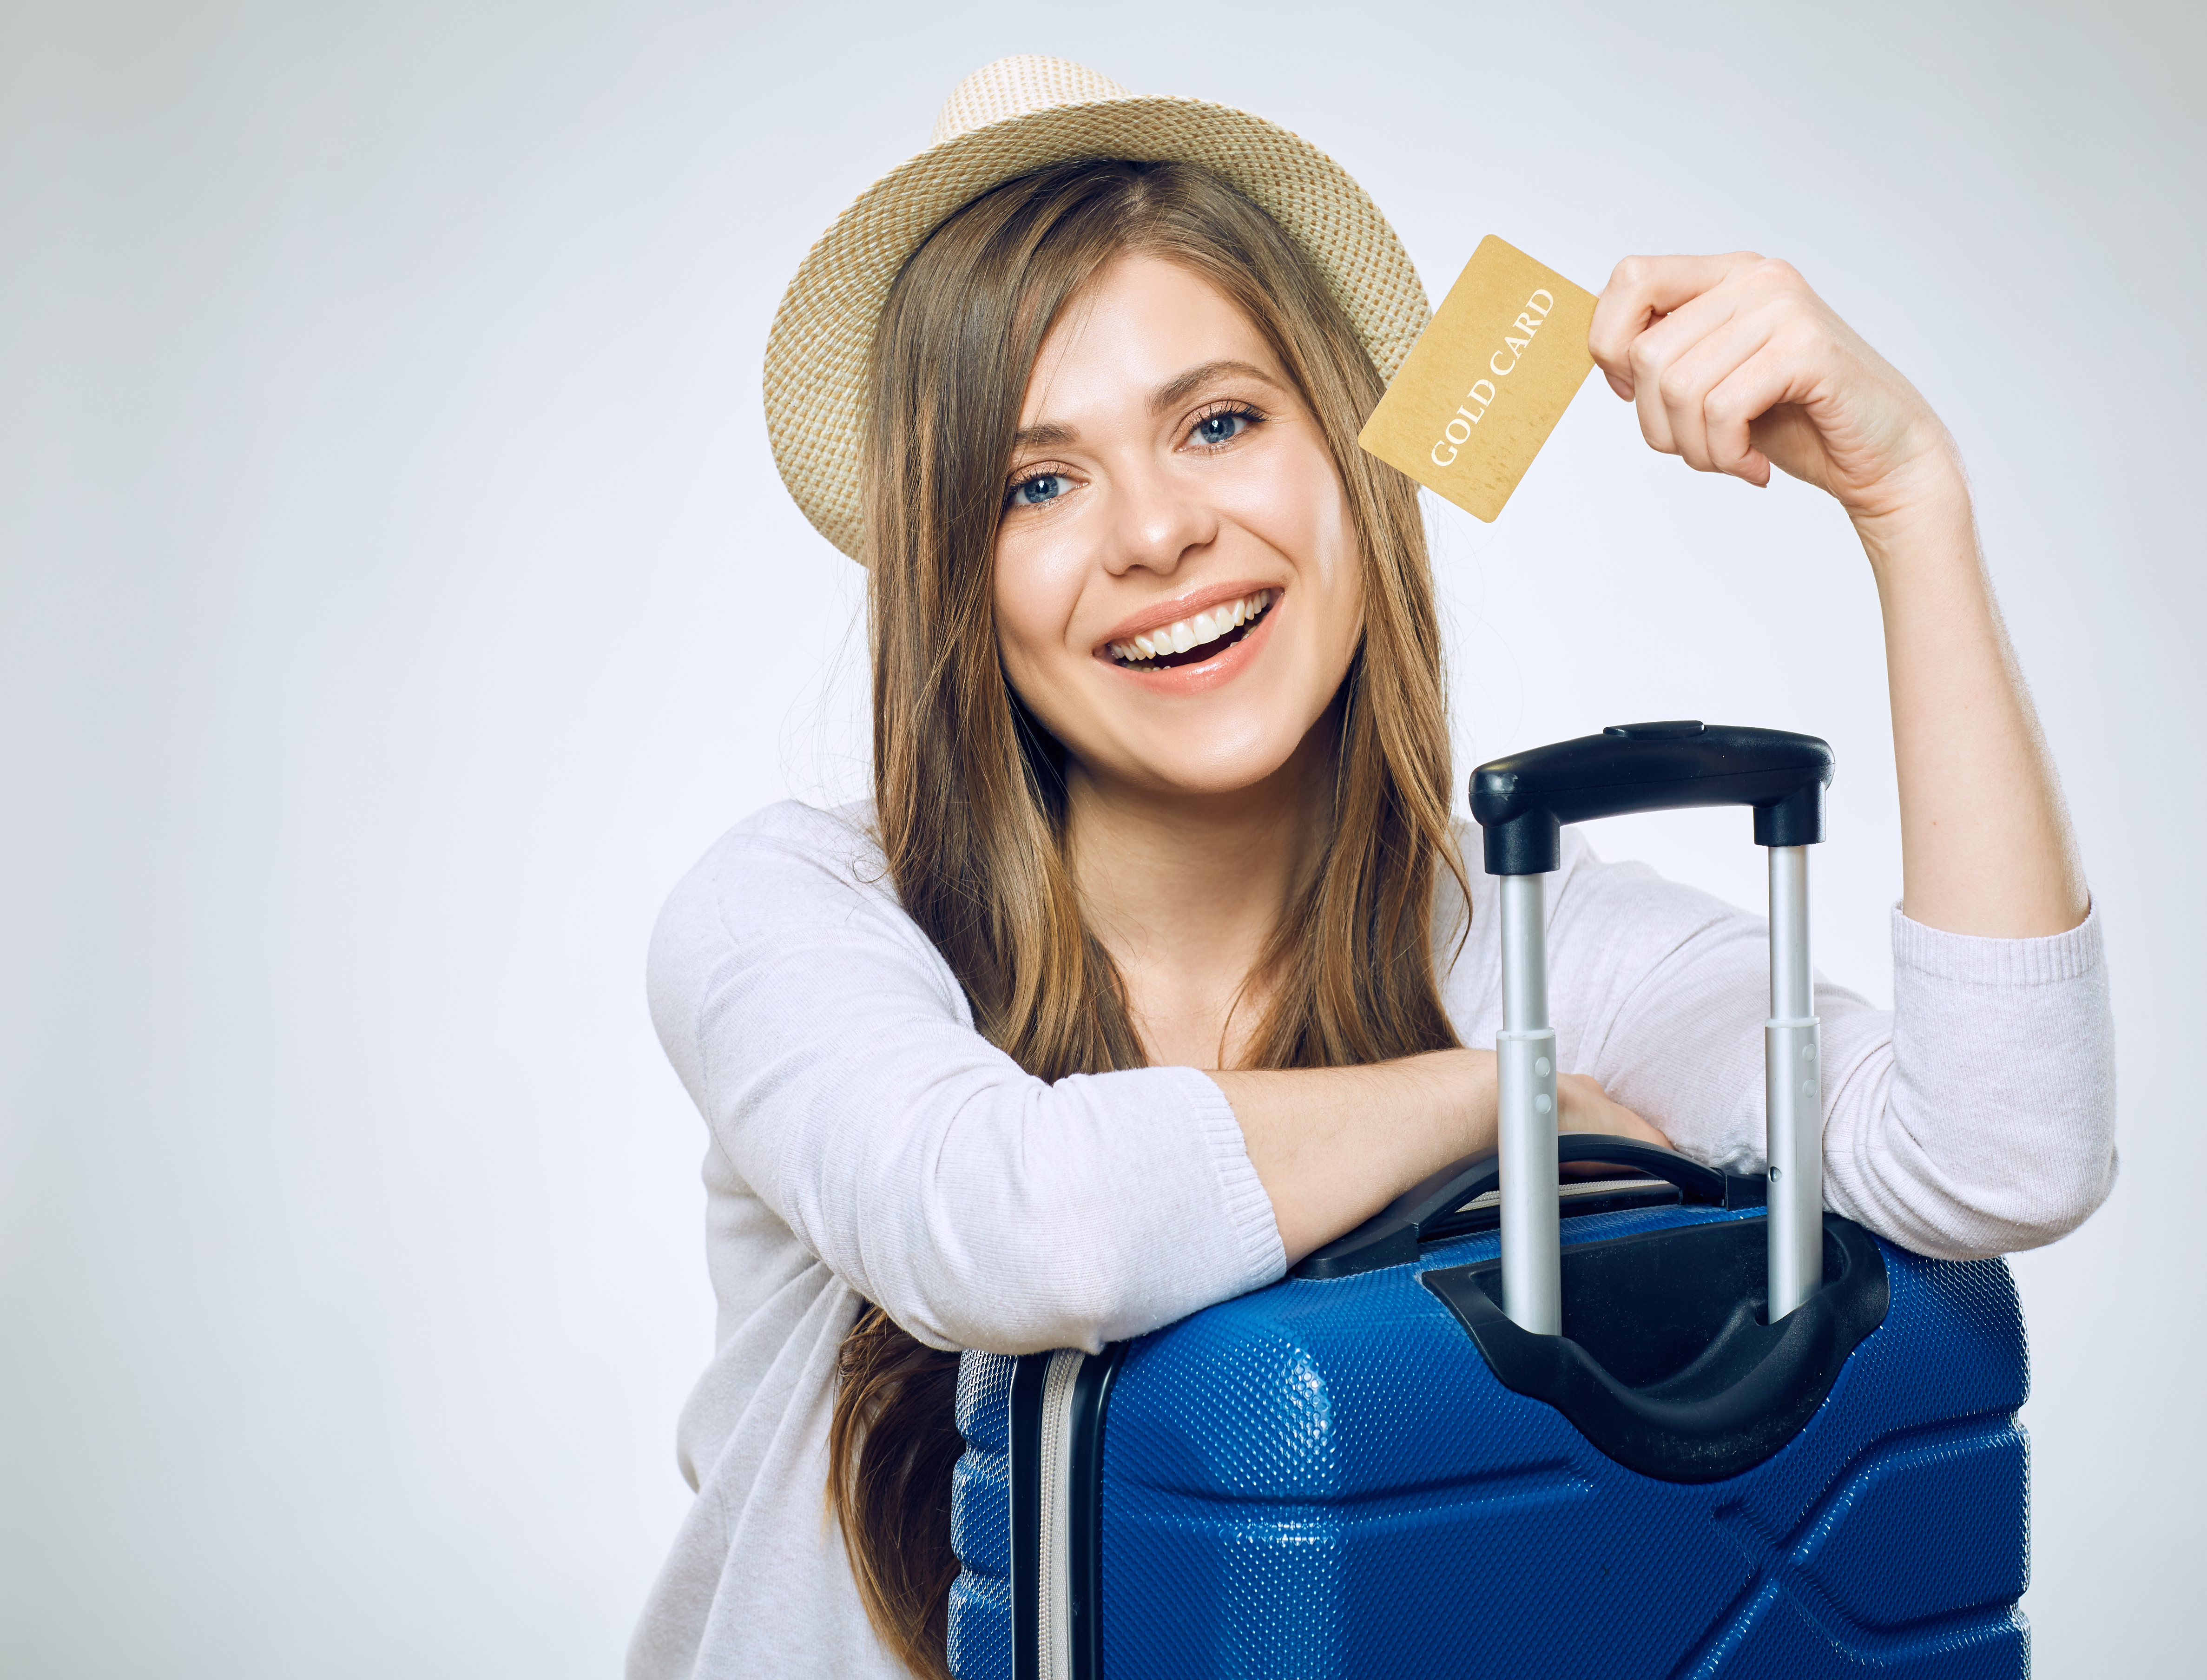 Woman with Credit Card and Travel Luggage